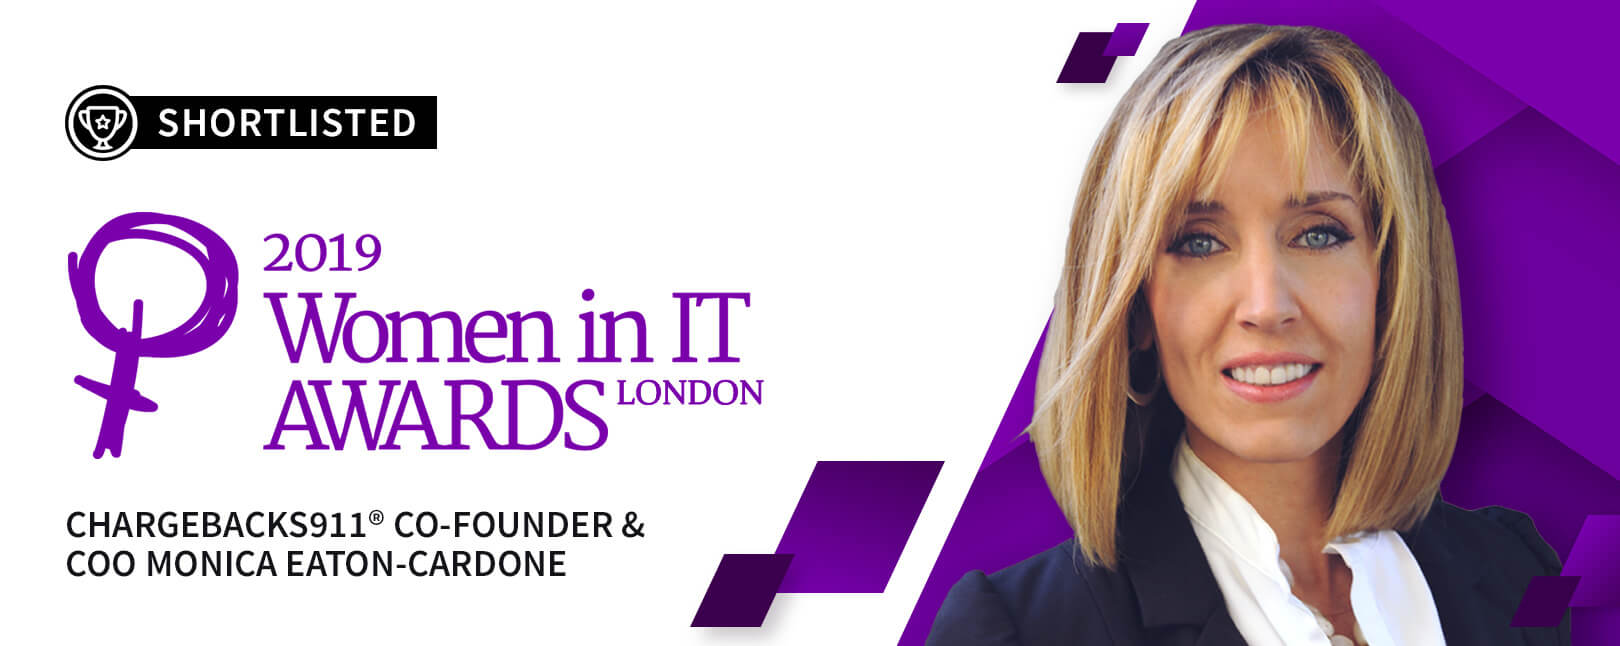 2019 Women in IT Awards London